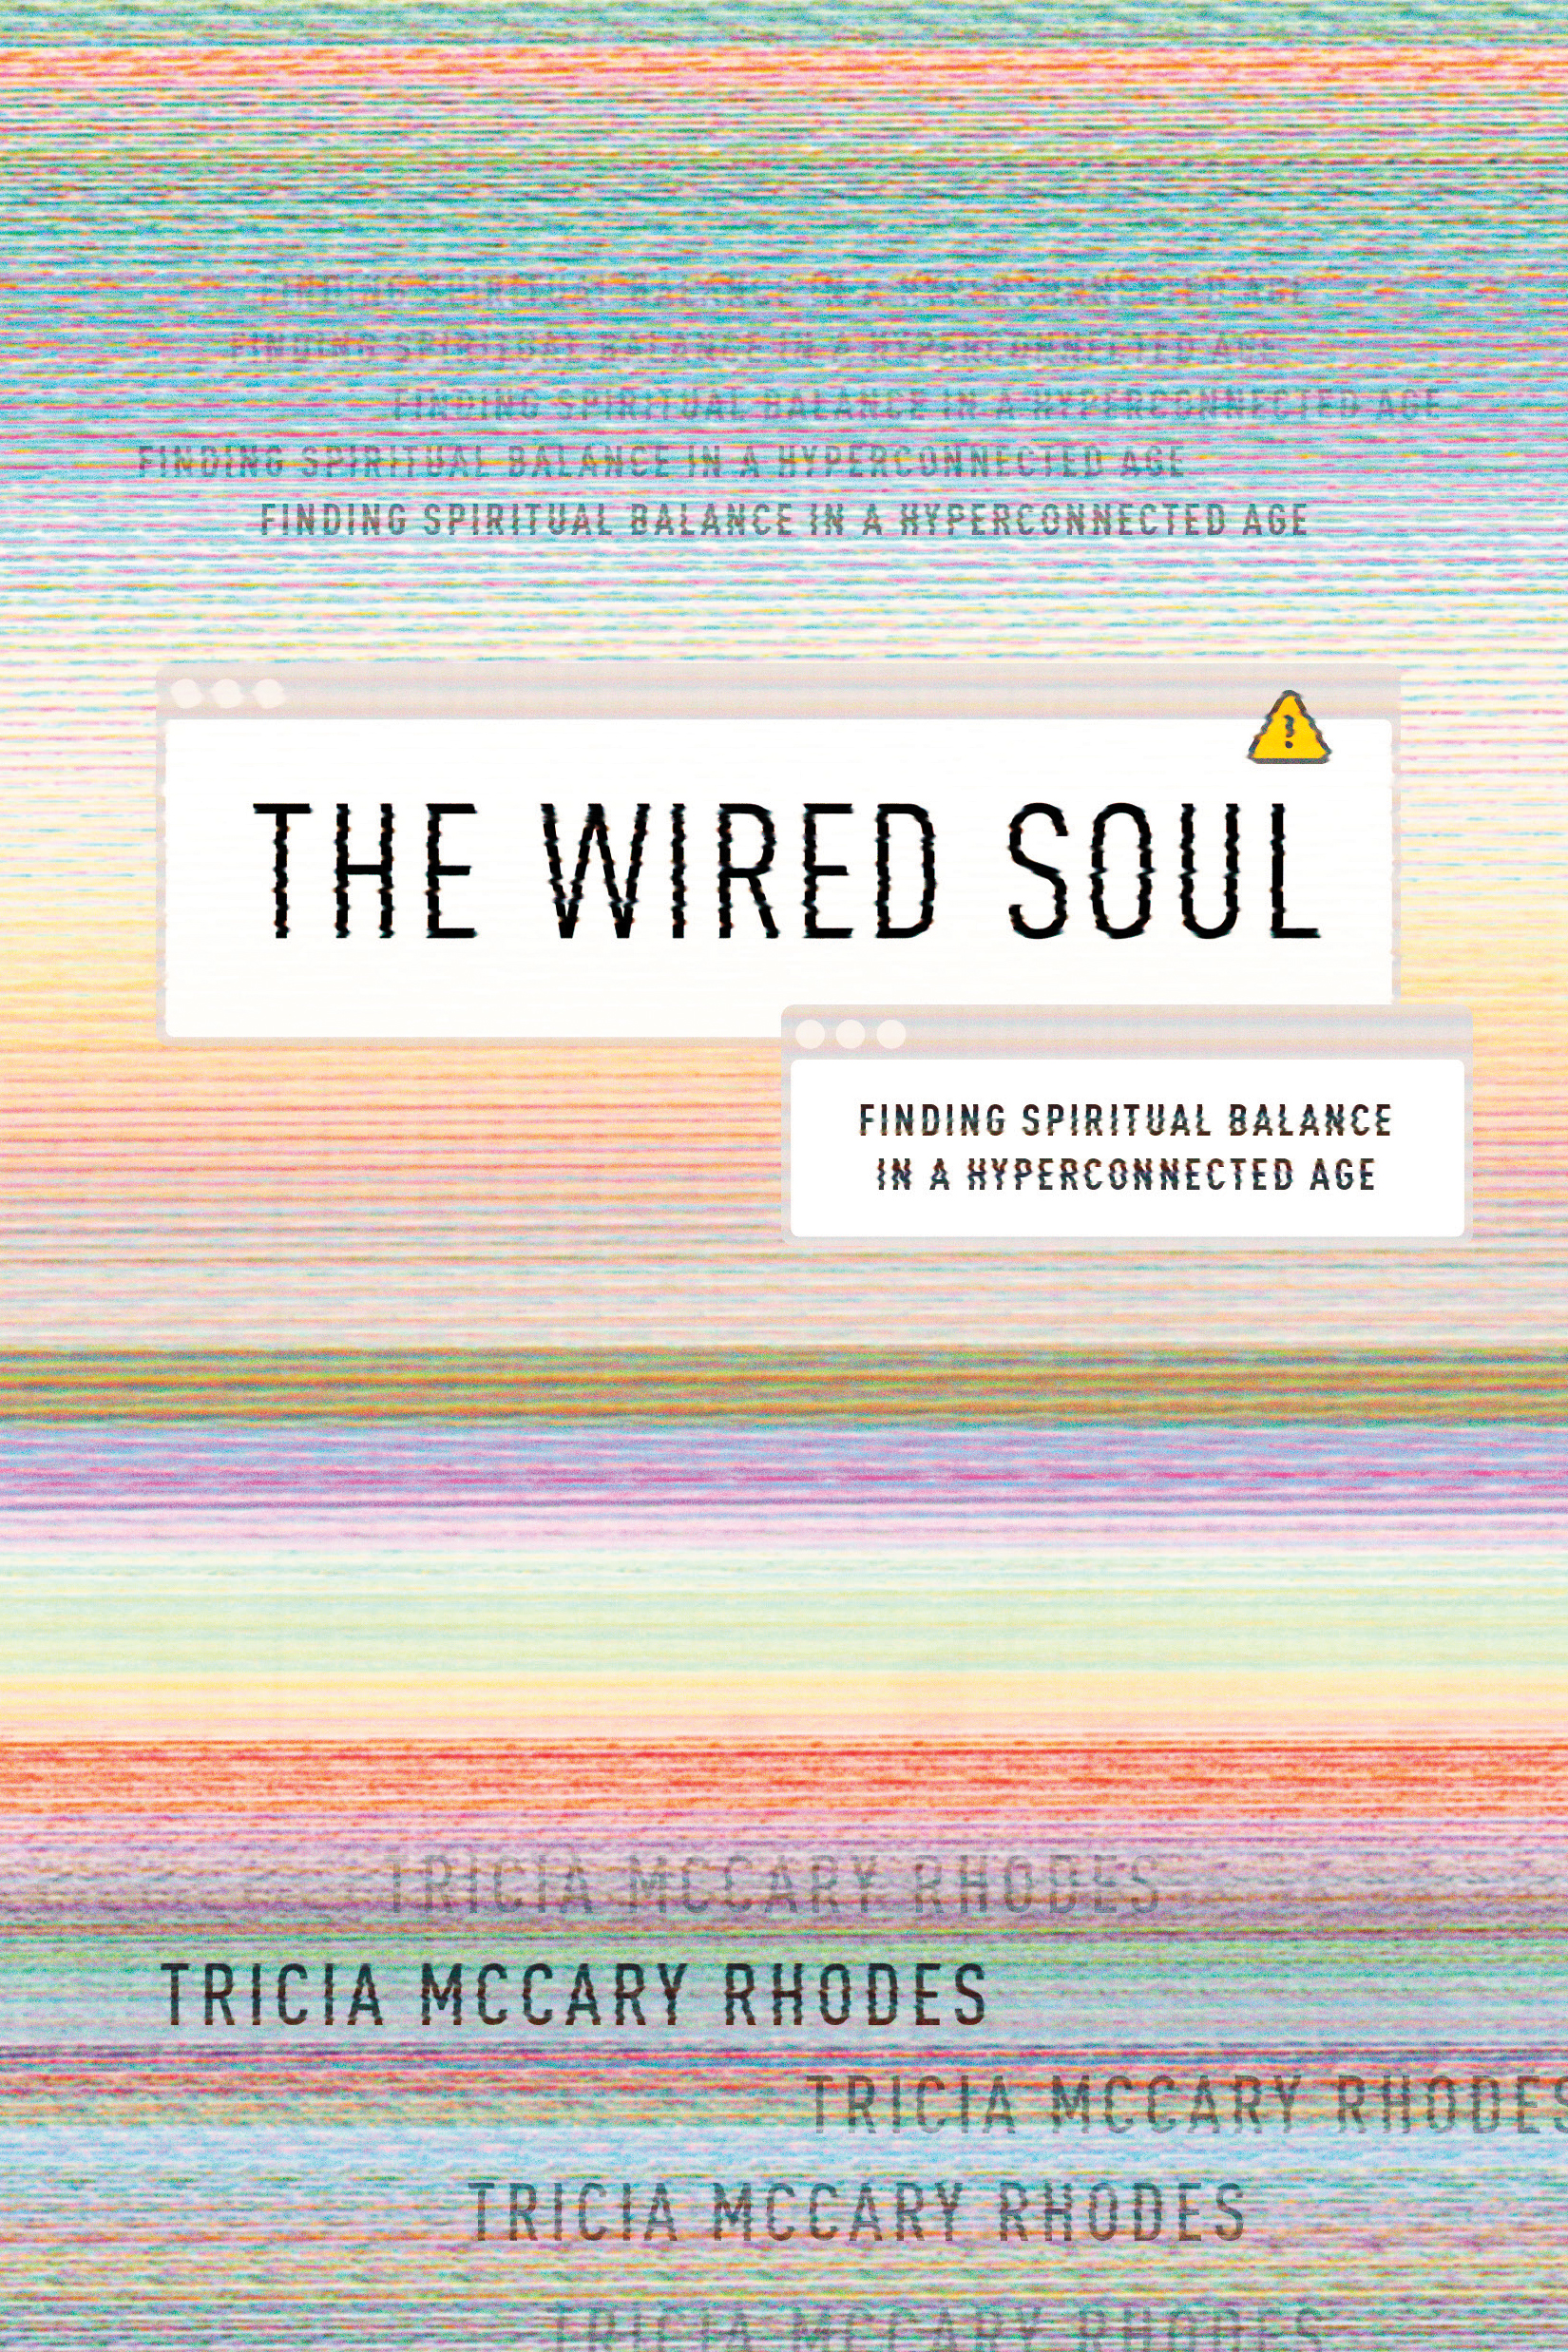 The Wired Soul